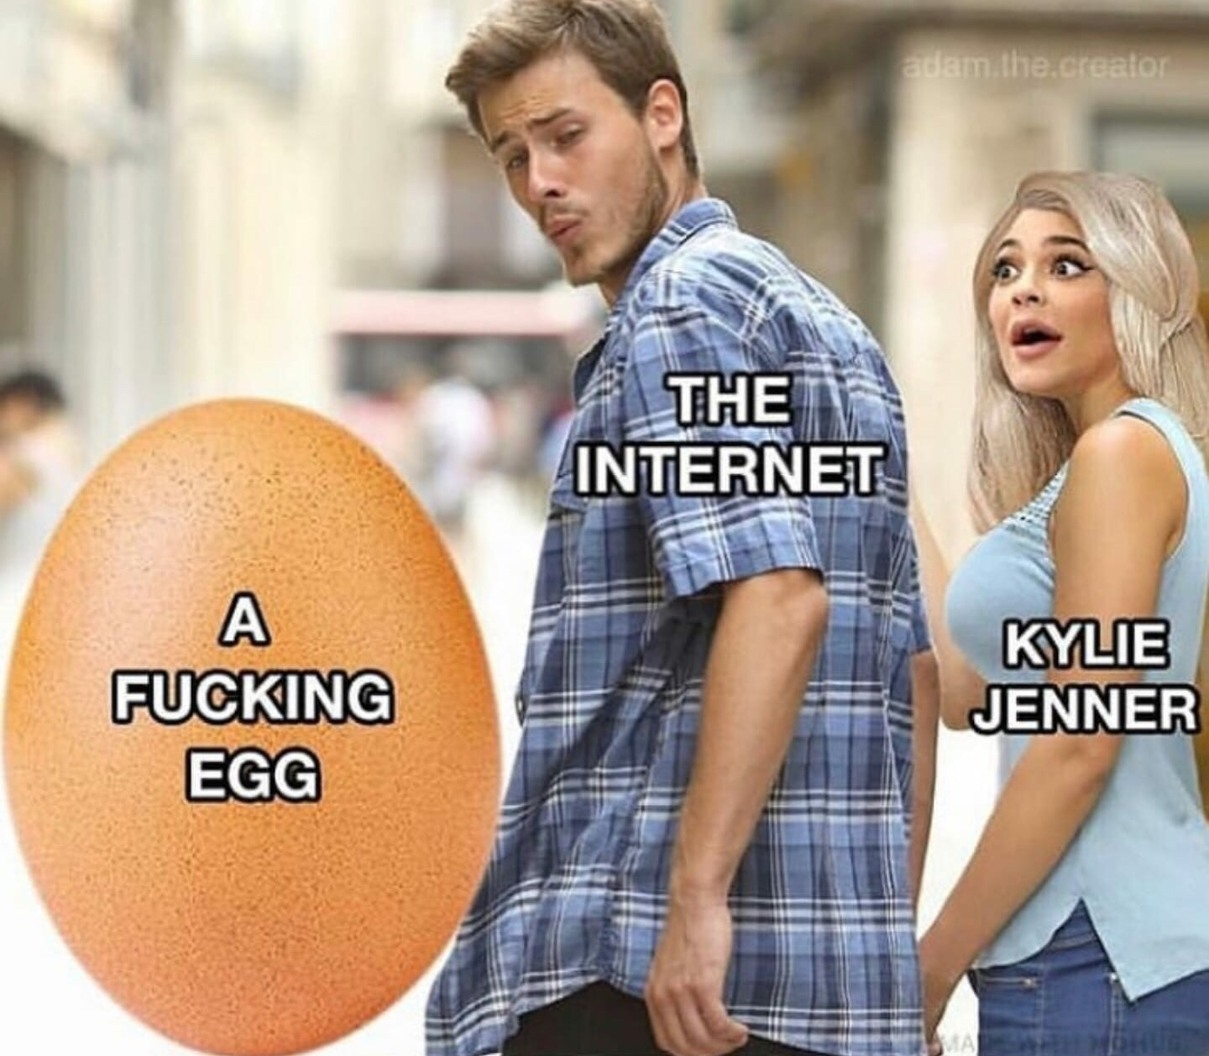 I used to have an egg once - meme